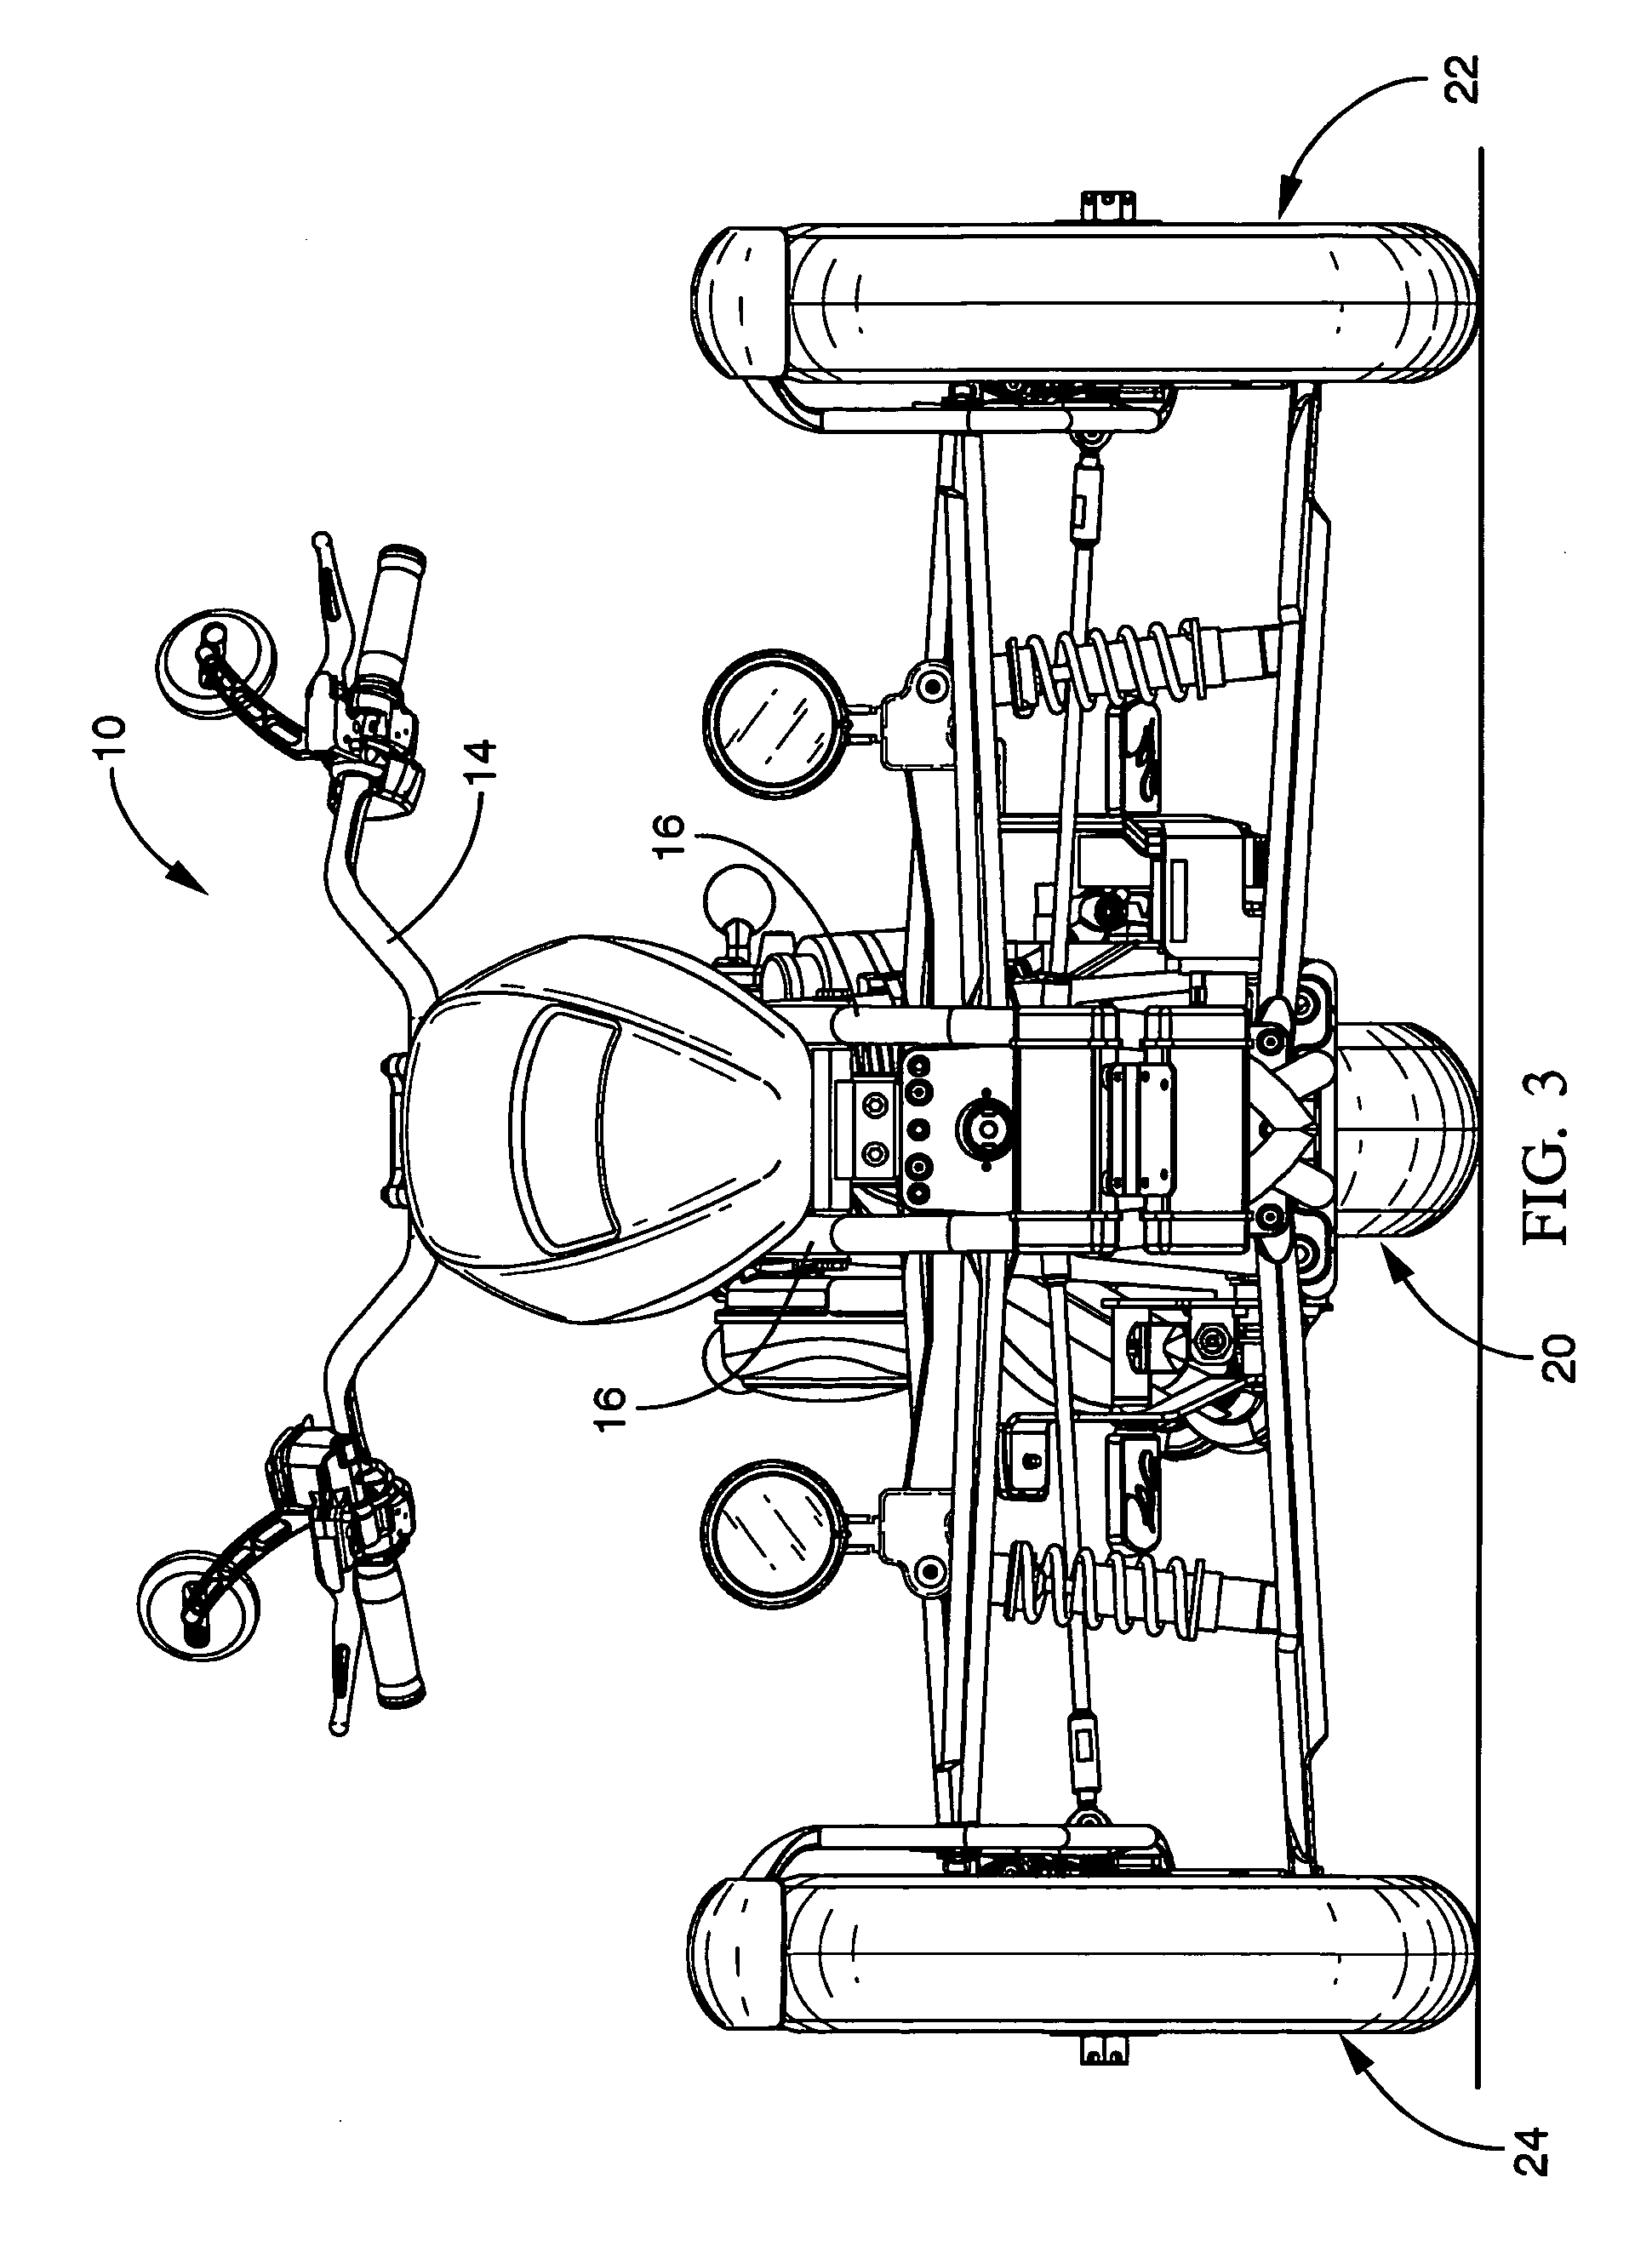 g20 engine diagram wiring library Mustang Fuse Box patent drawing